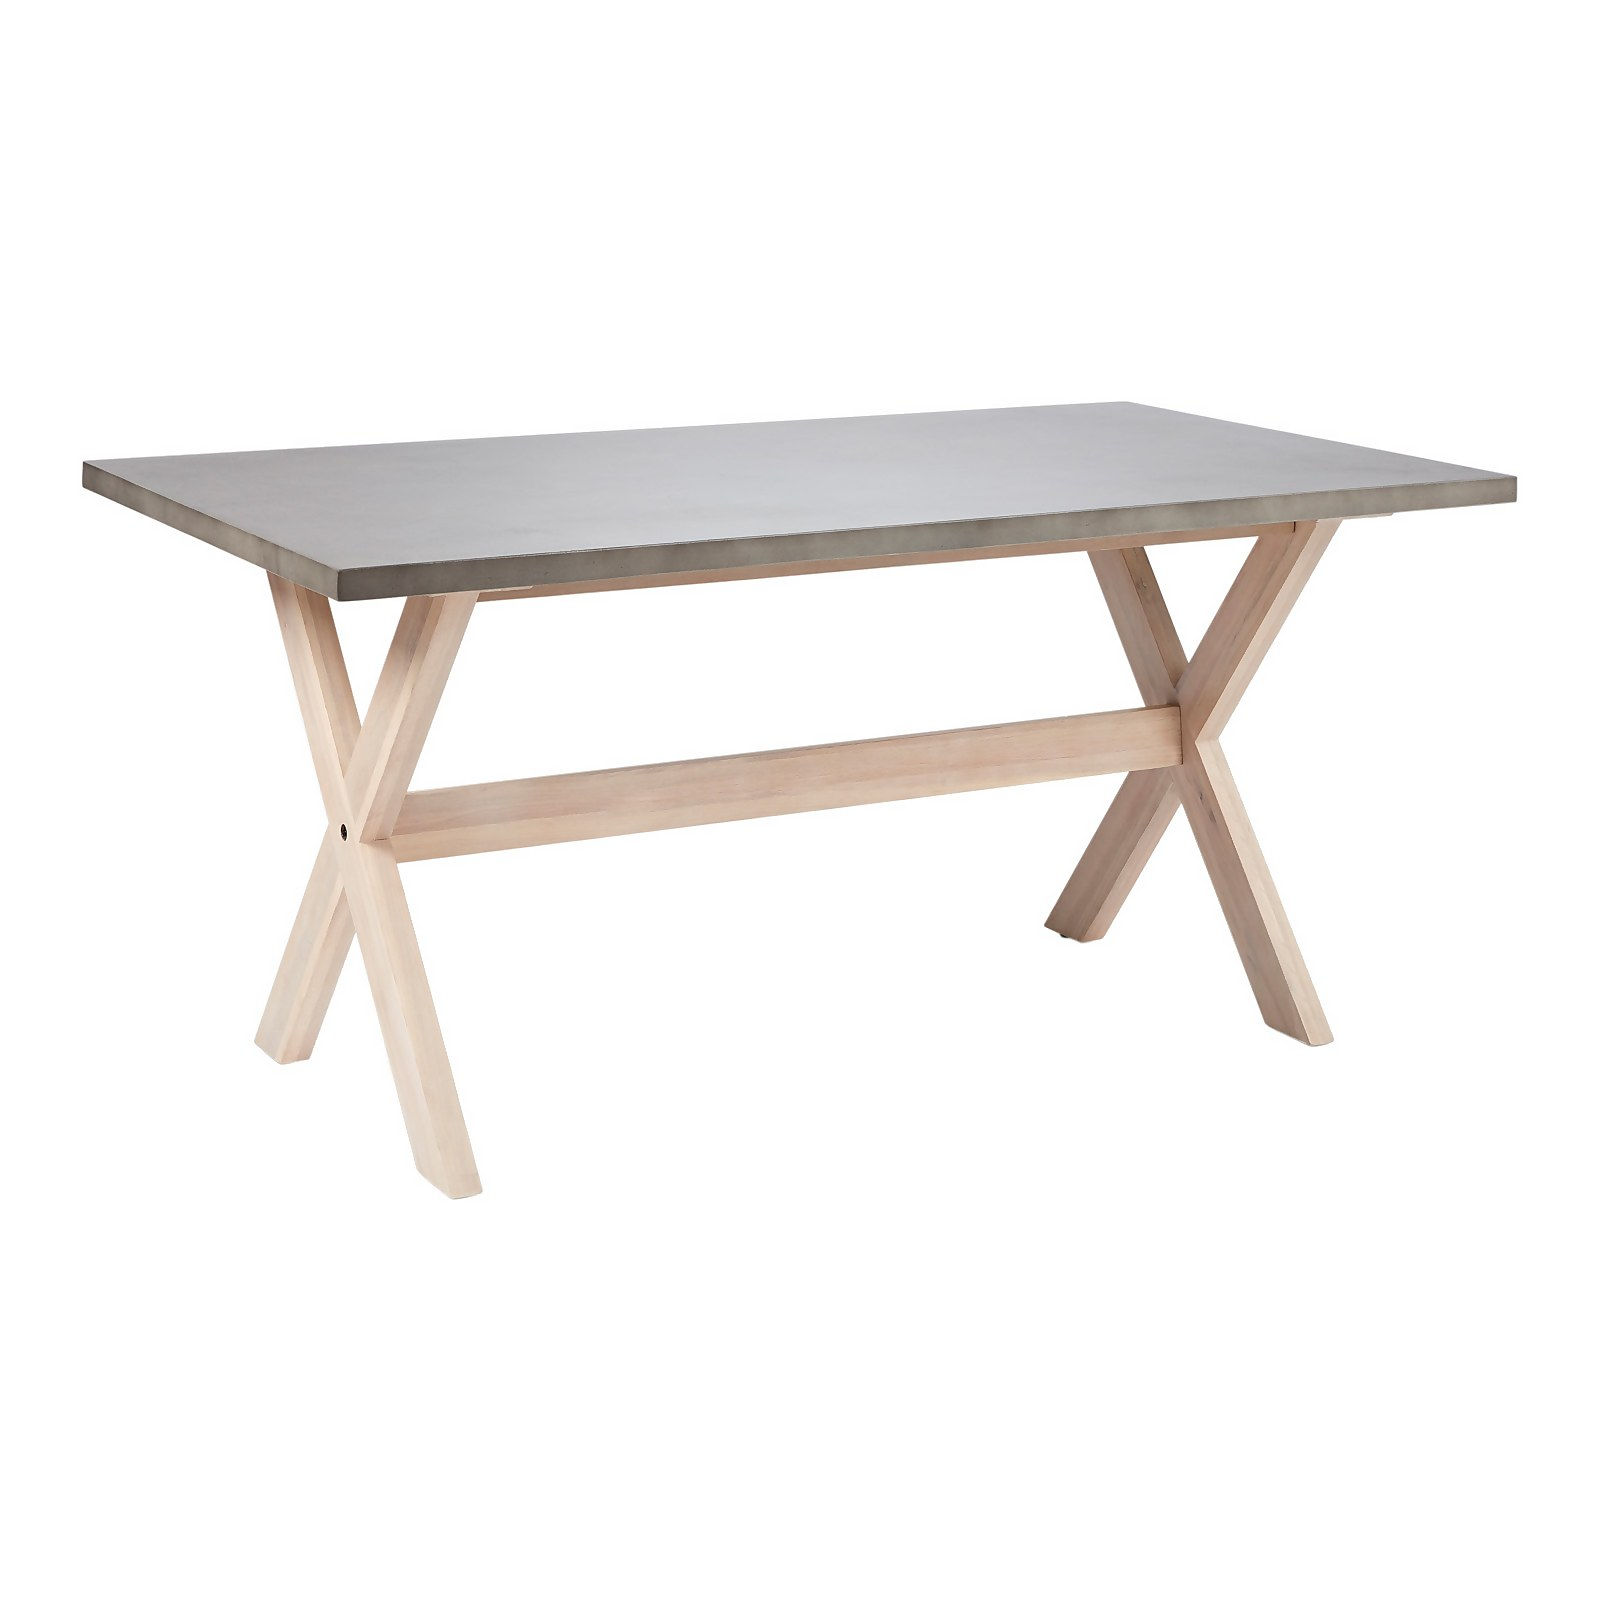 Carly Concrete 6 Seater Dining Table